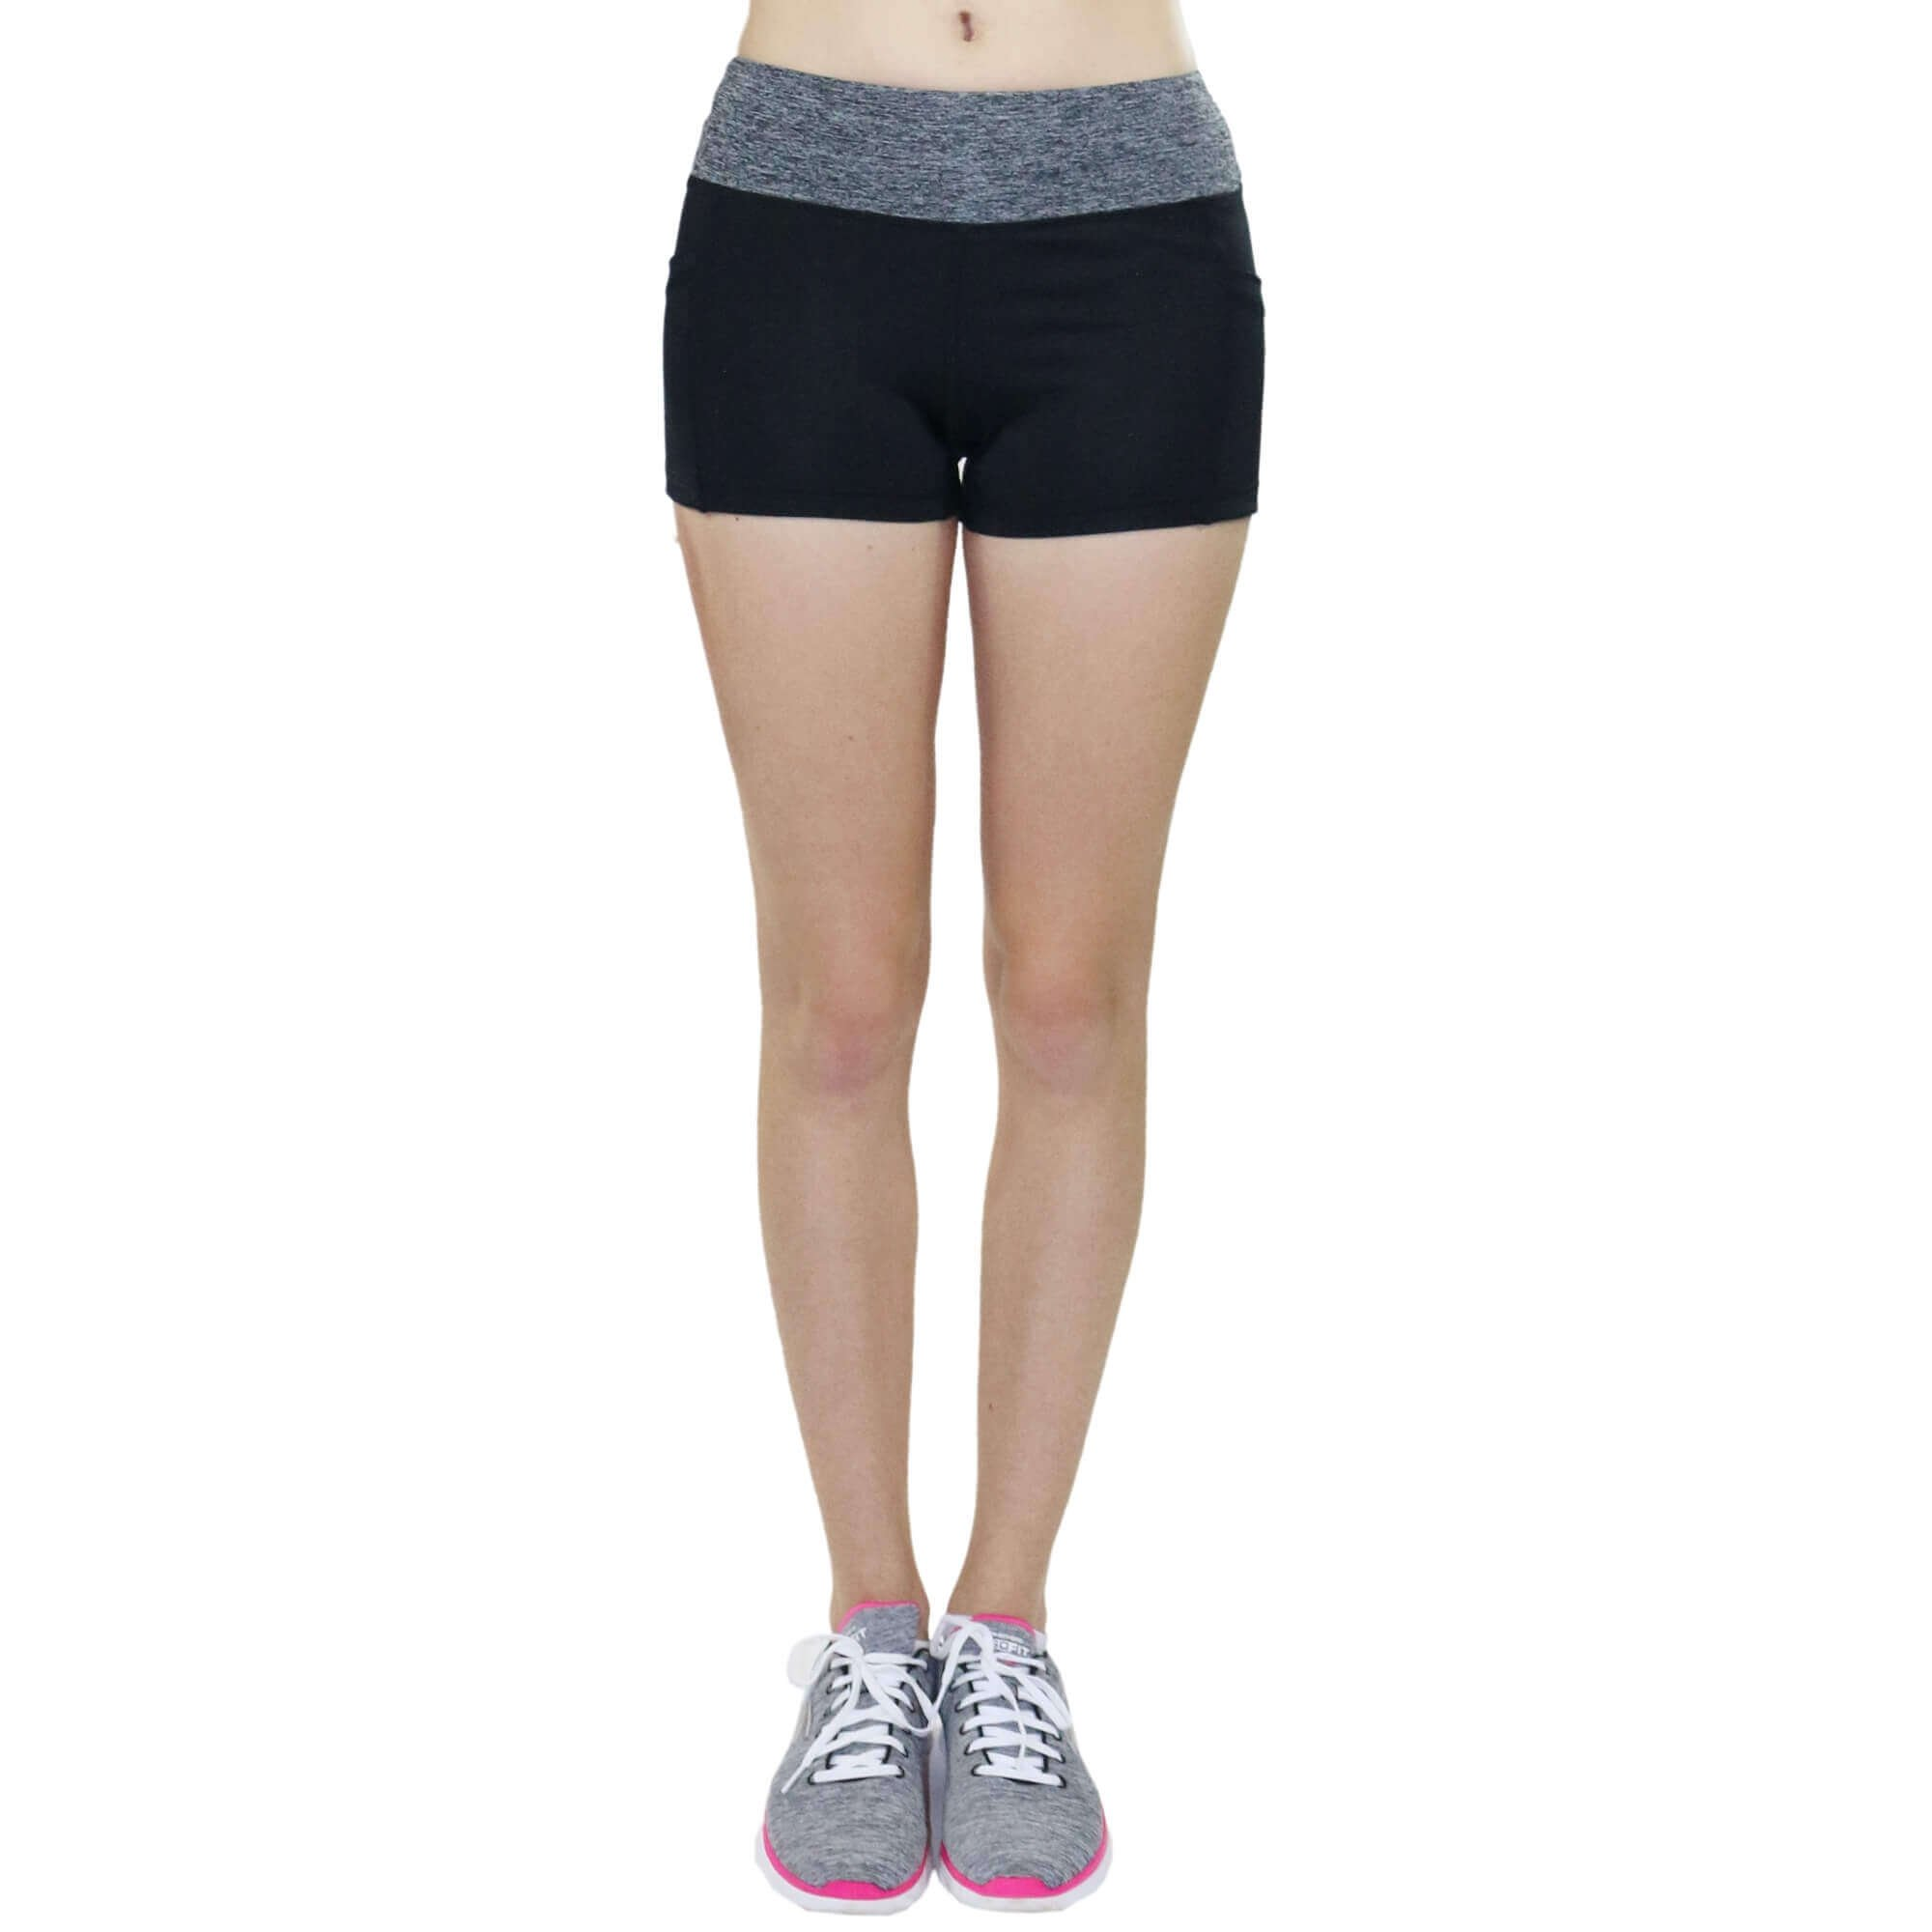 Fitcue Women's Active Fitness Shorts